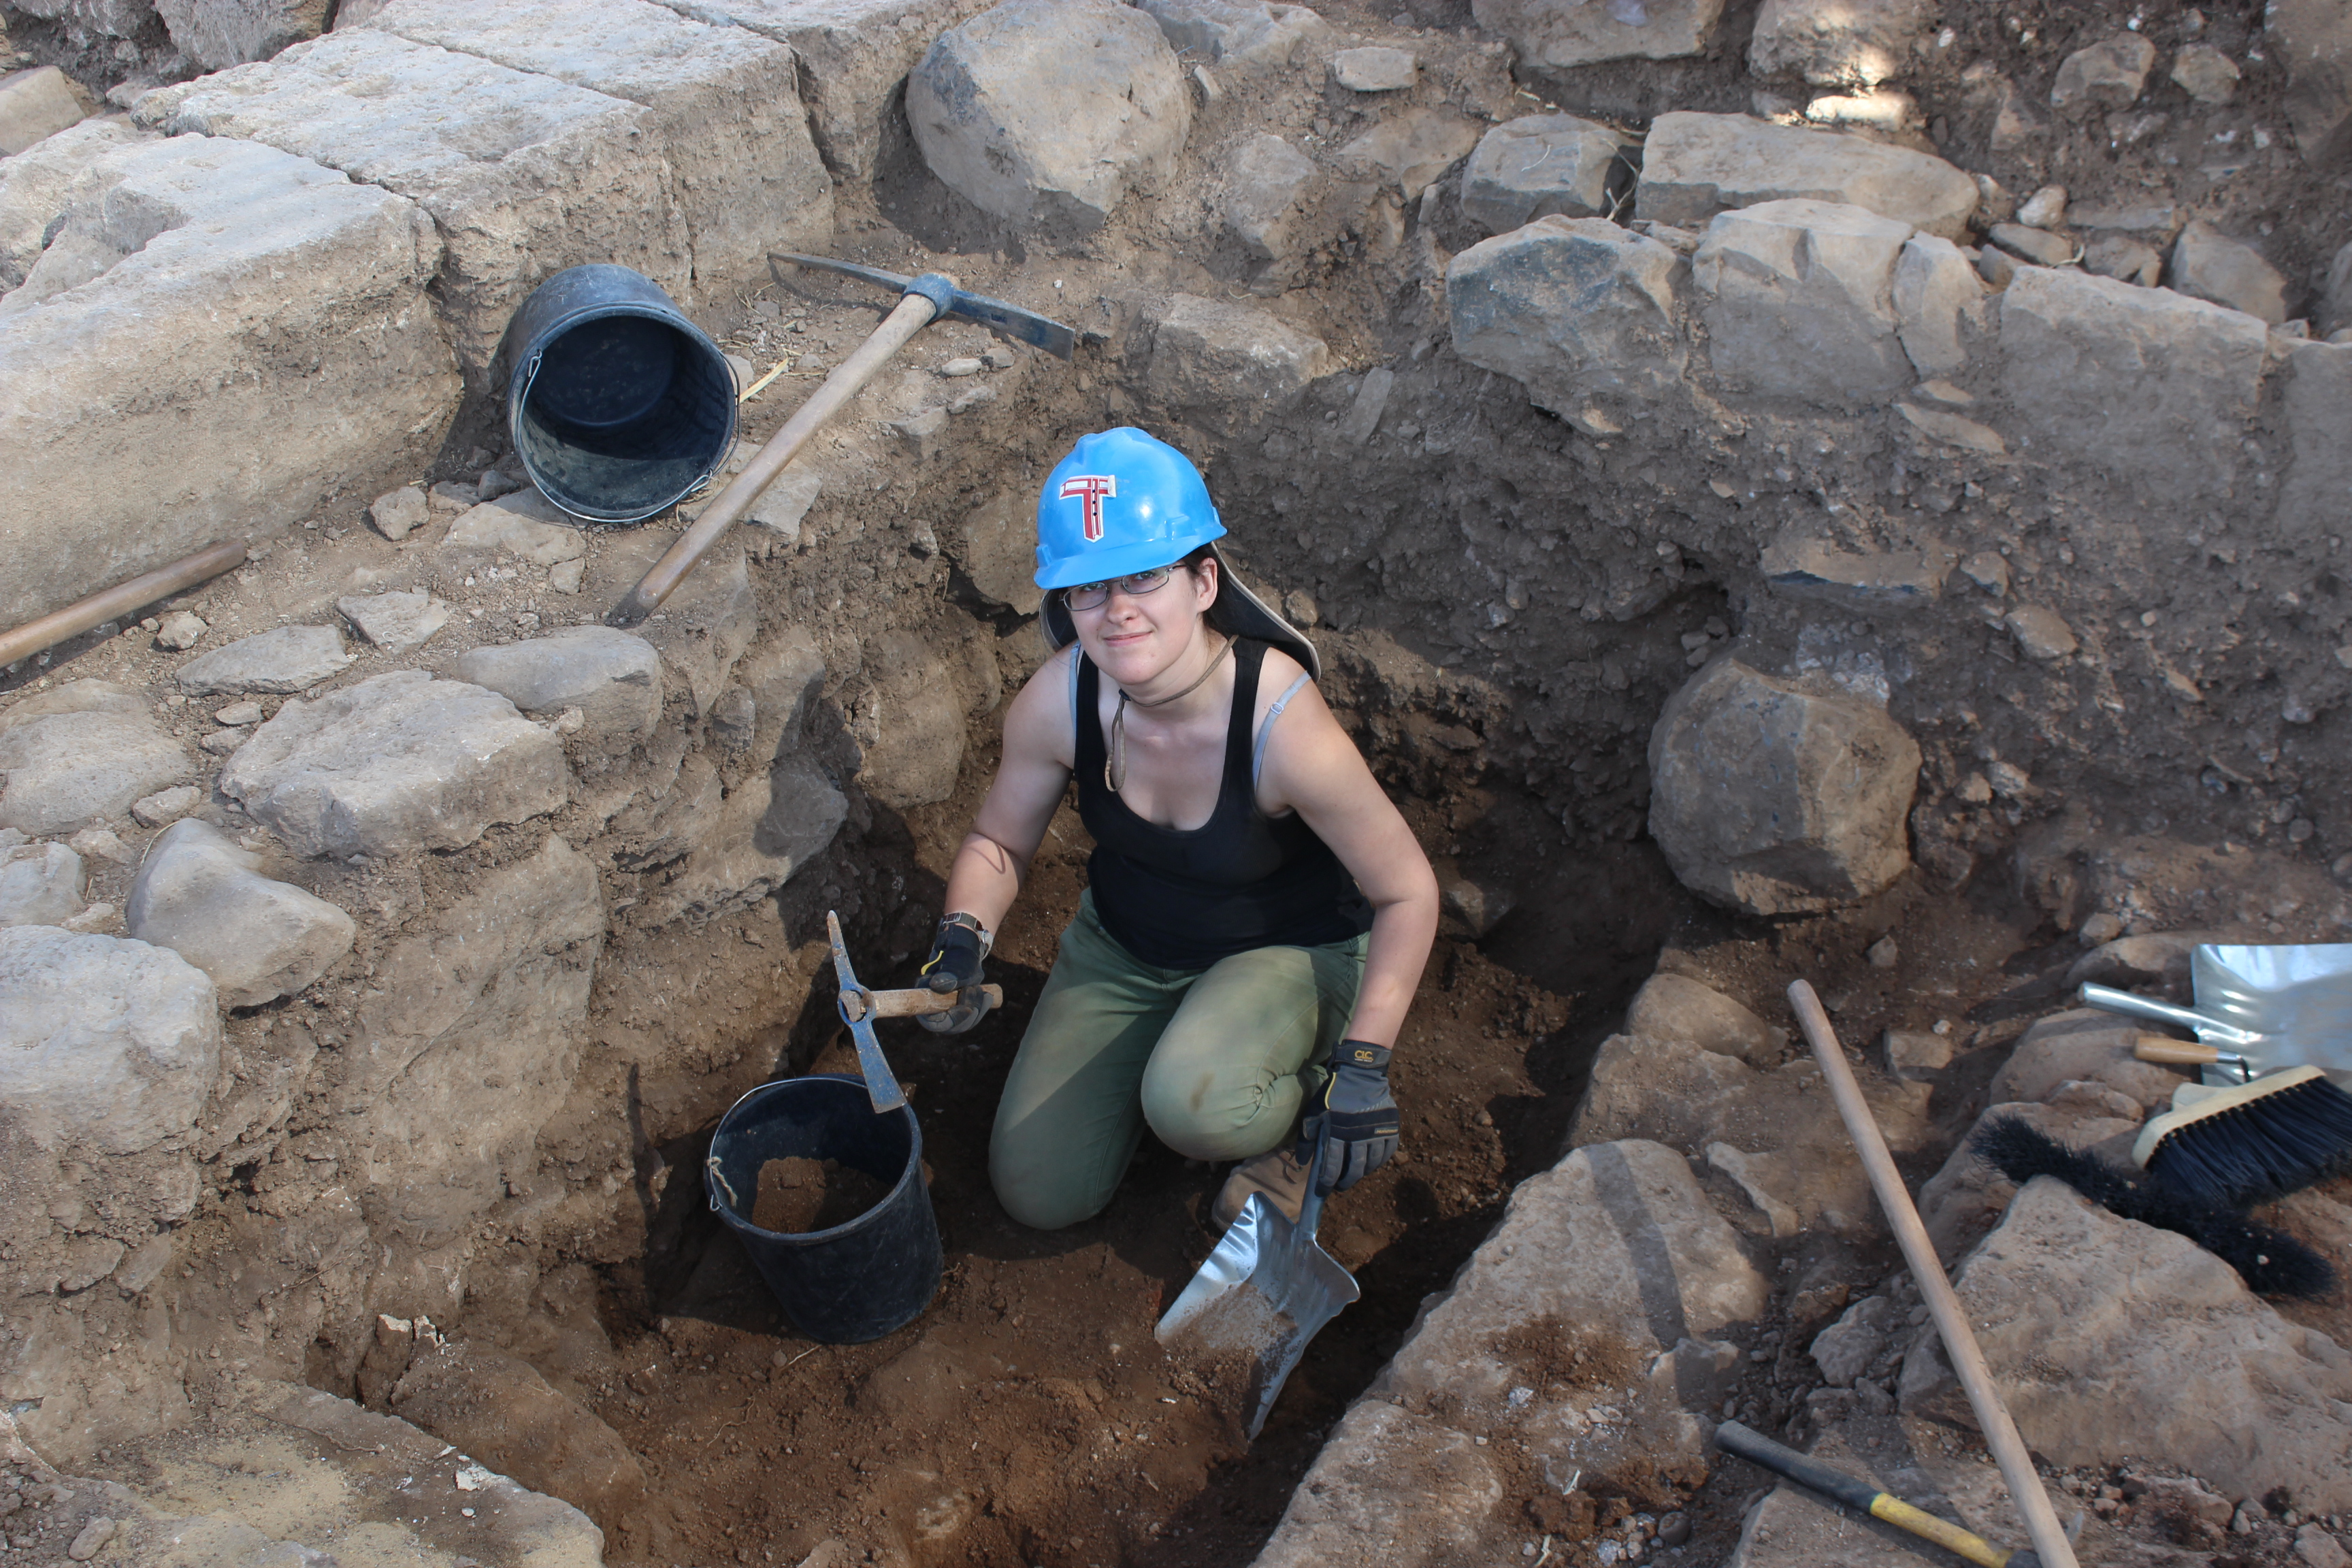 a young girl wearing a blue hard hat digs in an archealogical site in Israel